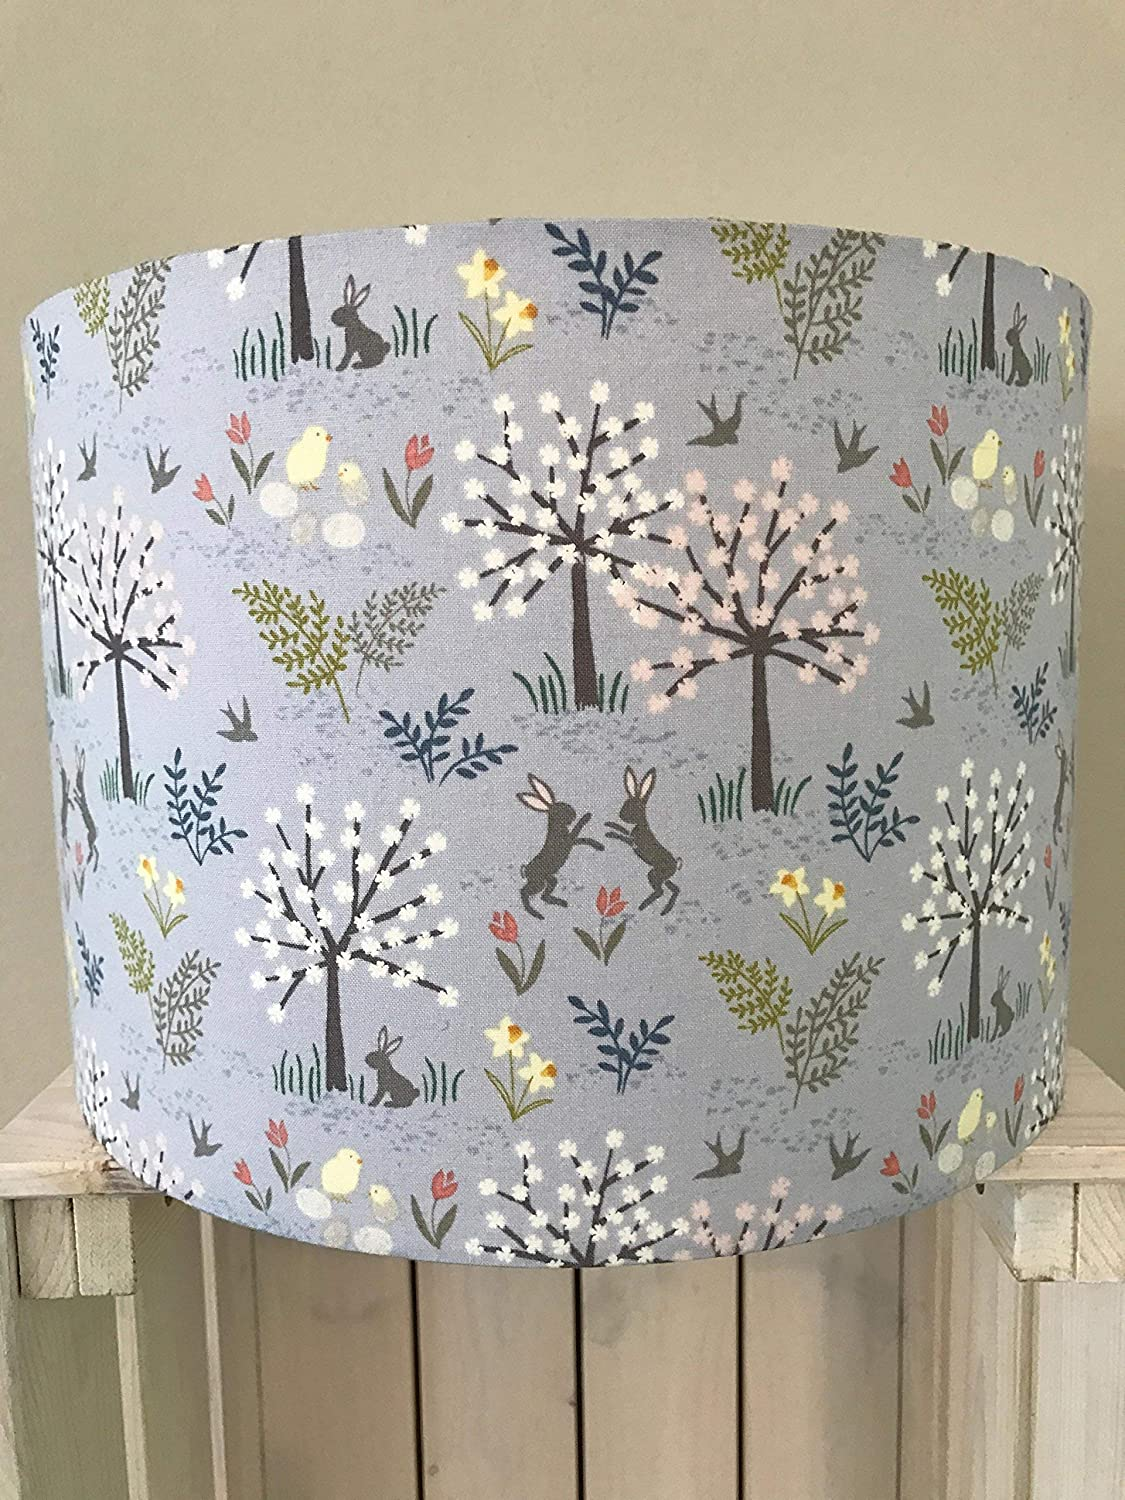 Lilac Woodland Scene Drum lampshade with Hares, Chicks and Trees